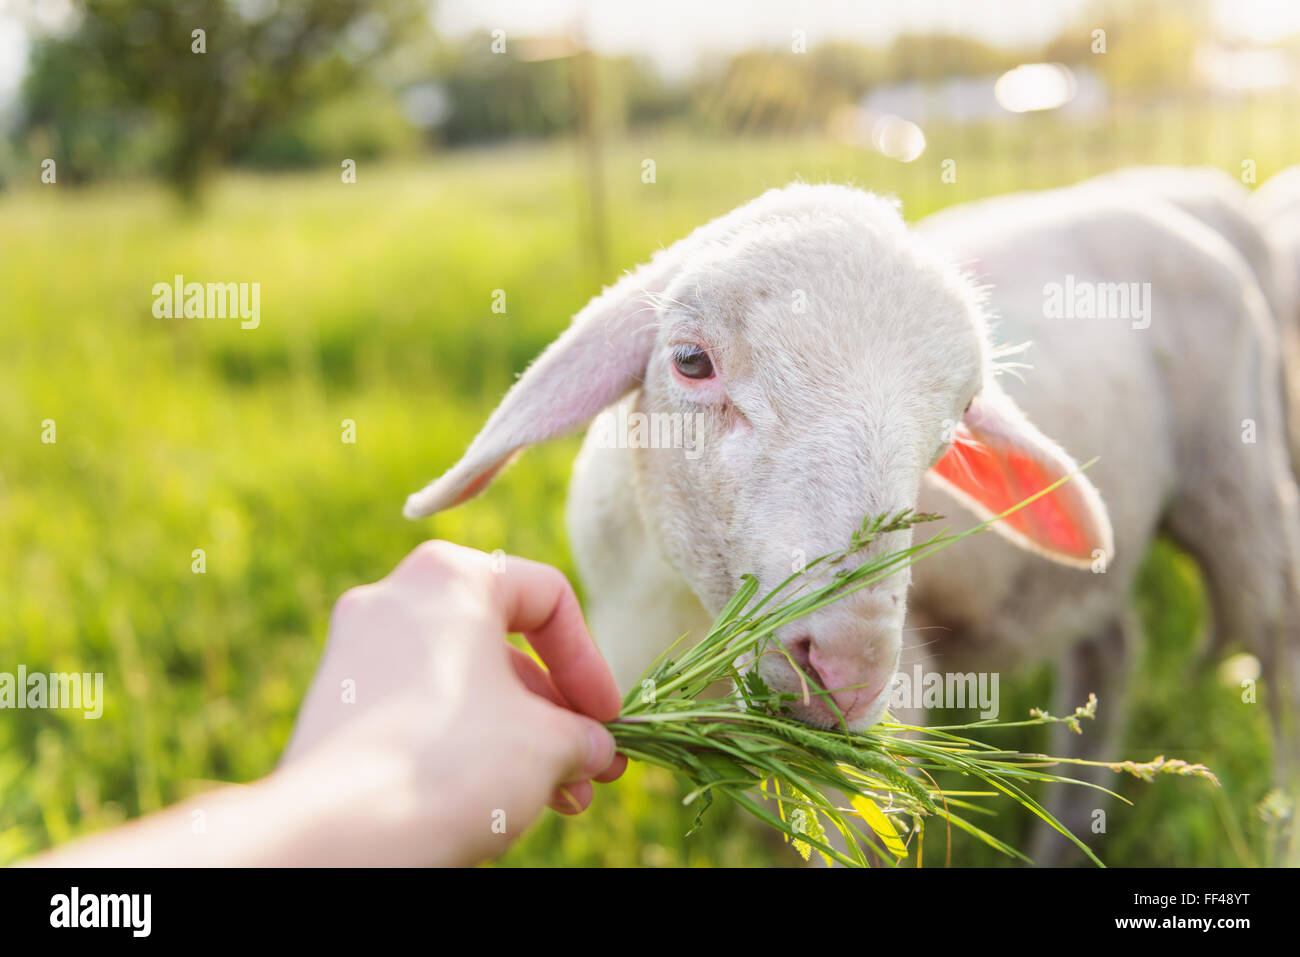 Détail de mans l'alimentation à la main des moutons à l'herbe. Sunny meadow. Photo Stock